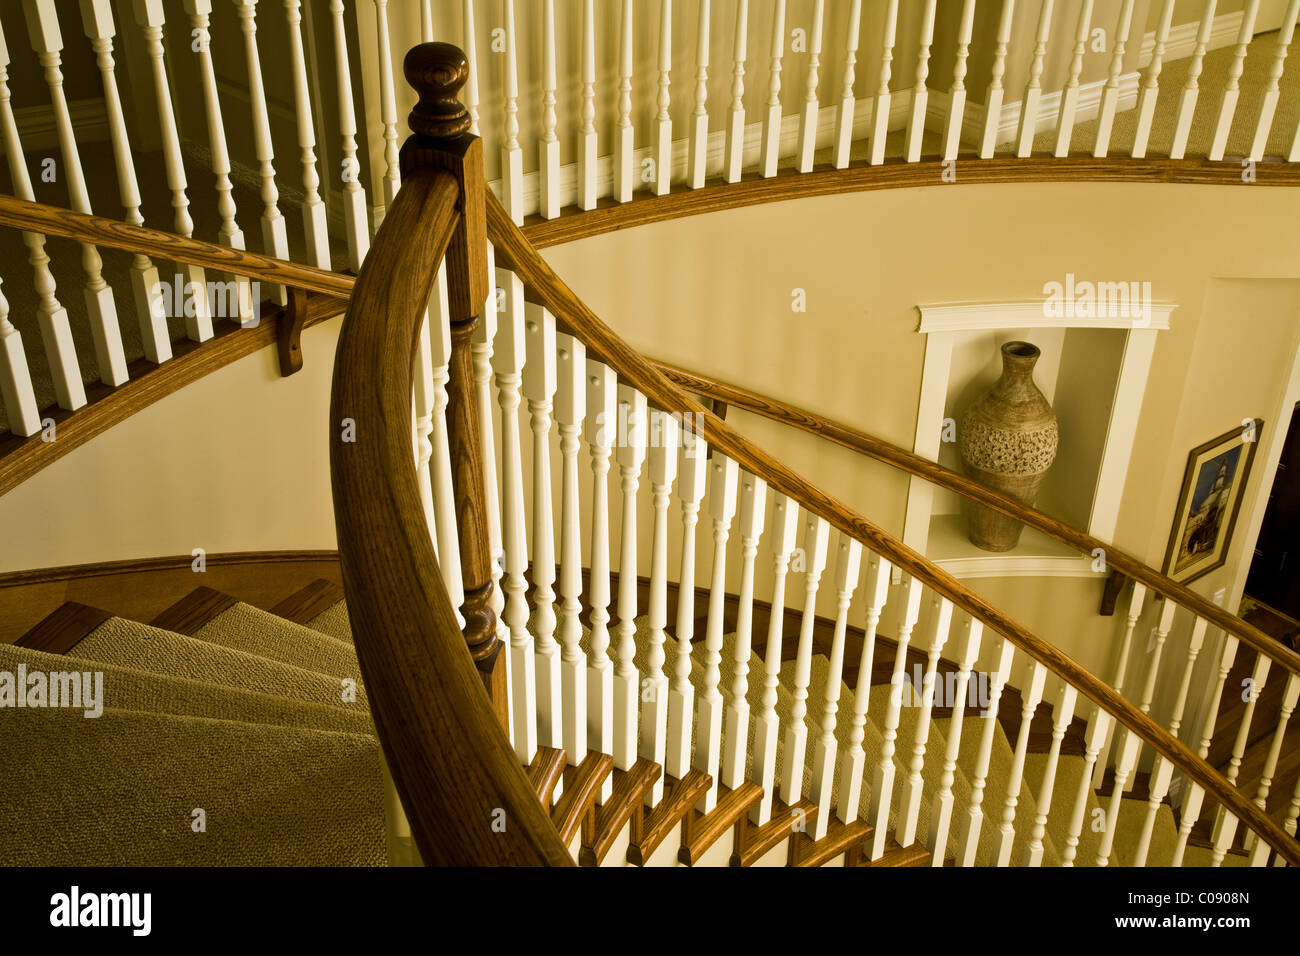 Abstract Image Of A Curved Residential Stairway   Stock Image